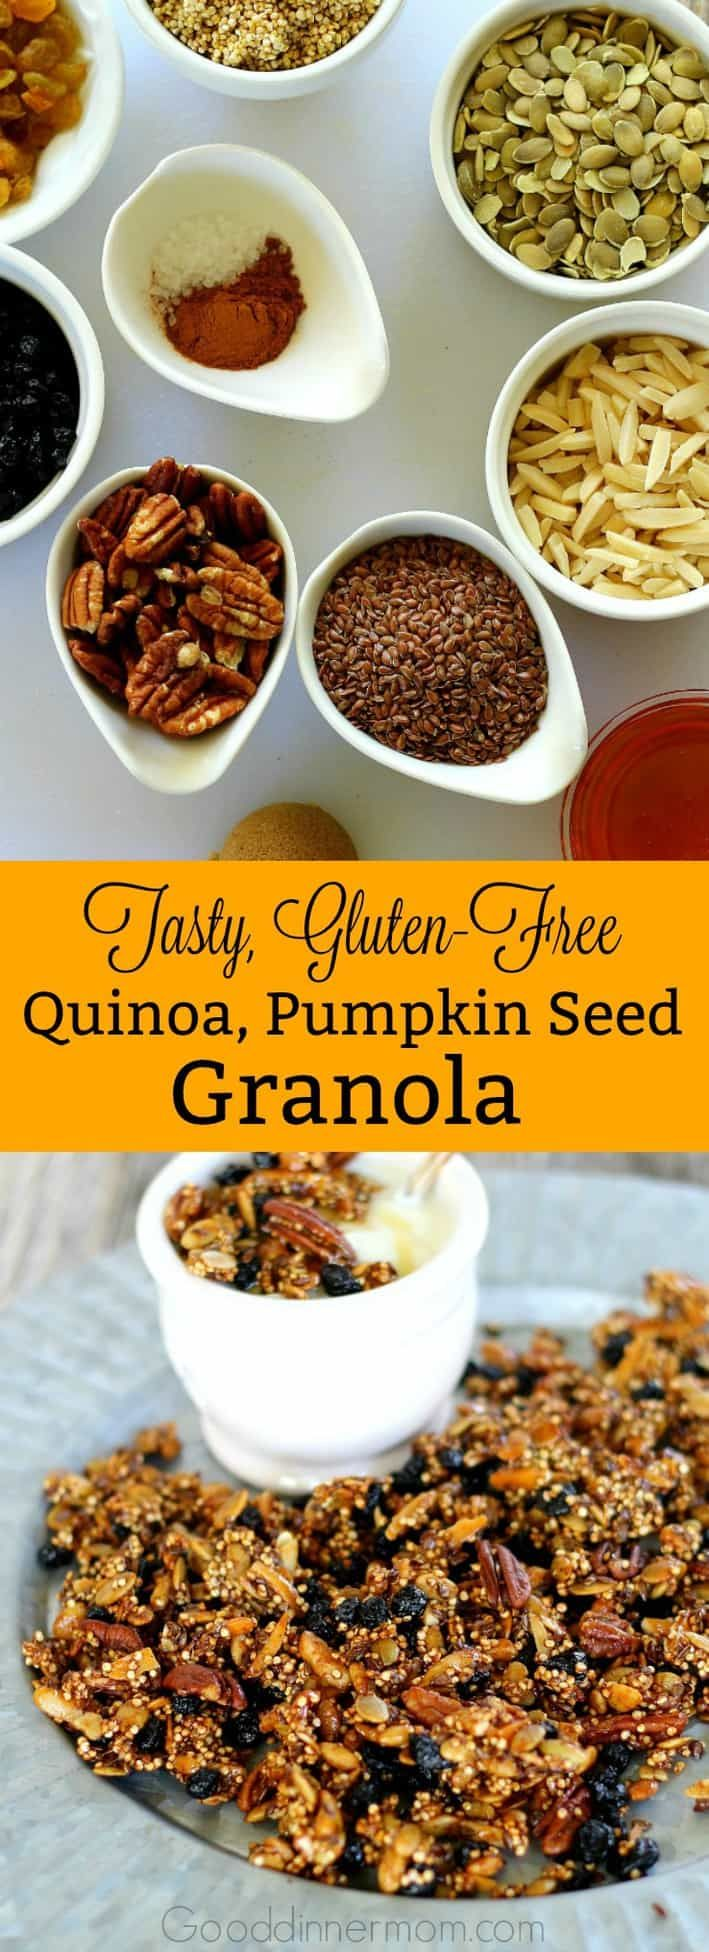 Gluten-free Quinoa and Pumpkin Seed Granola is quick, easy and delicious with nuts, flax, pumpkin and quinoa seeds, dried fruit and a light honey glaze.